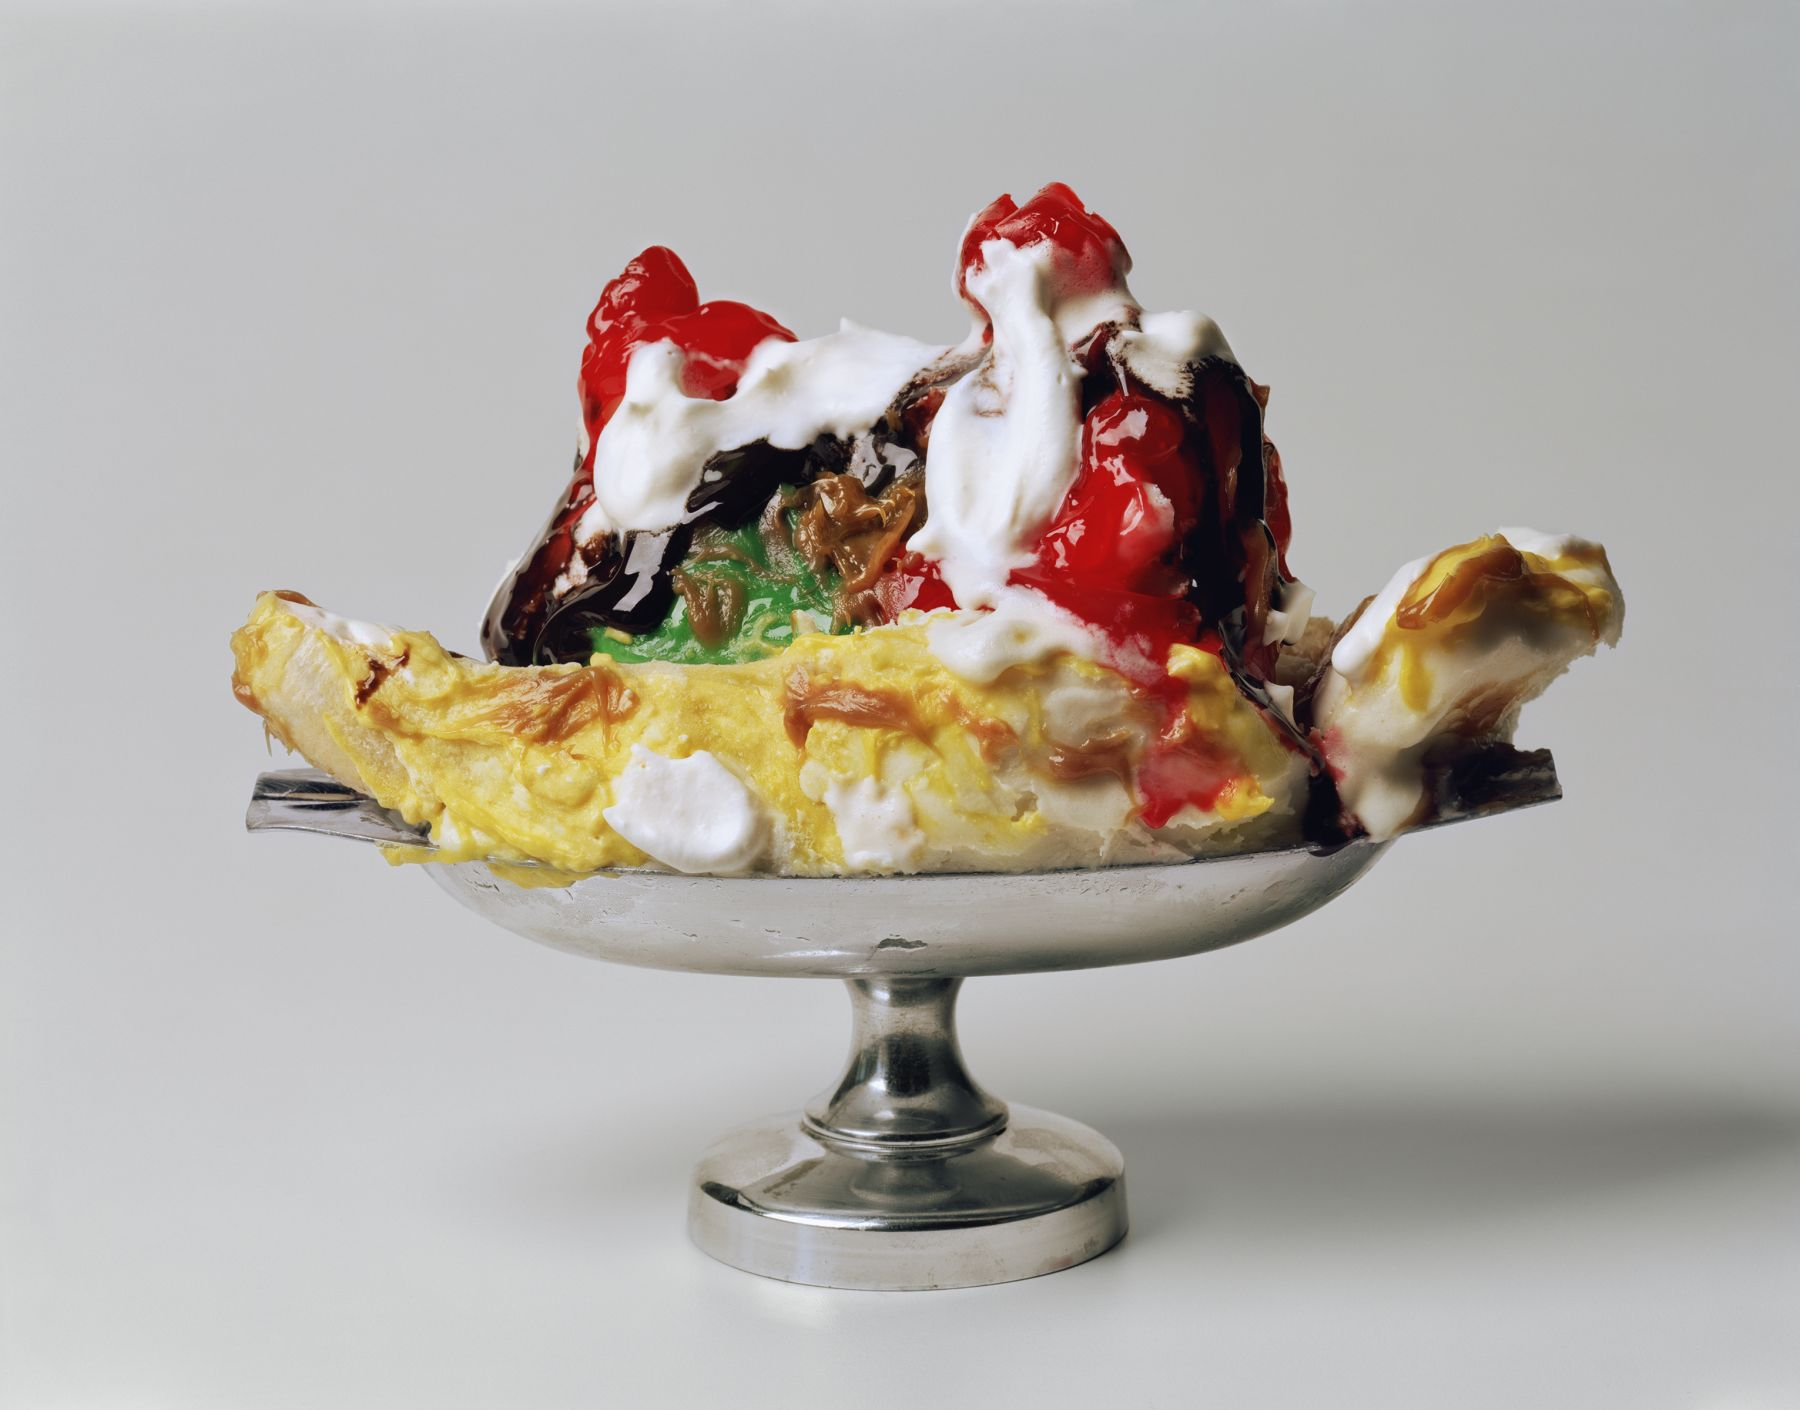 Banana Split, 2019. Archival pigment print, 31 1/4 x 40 inches.